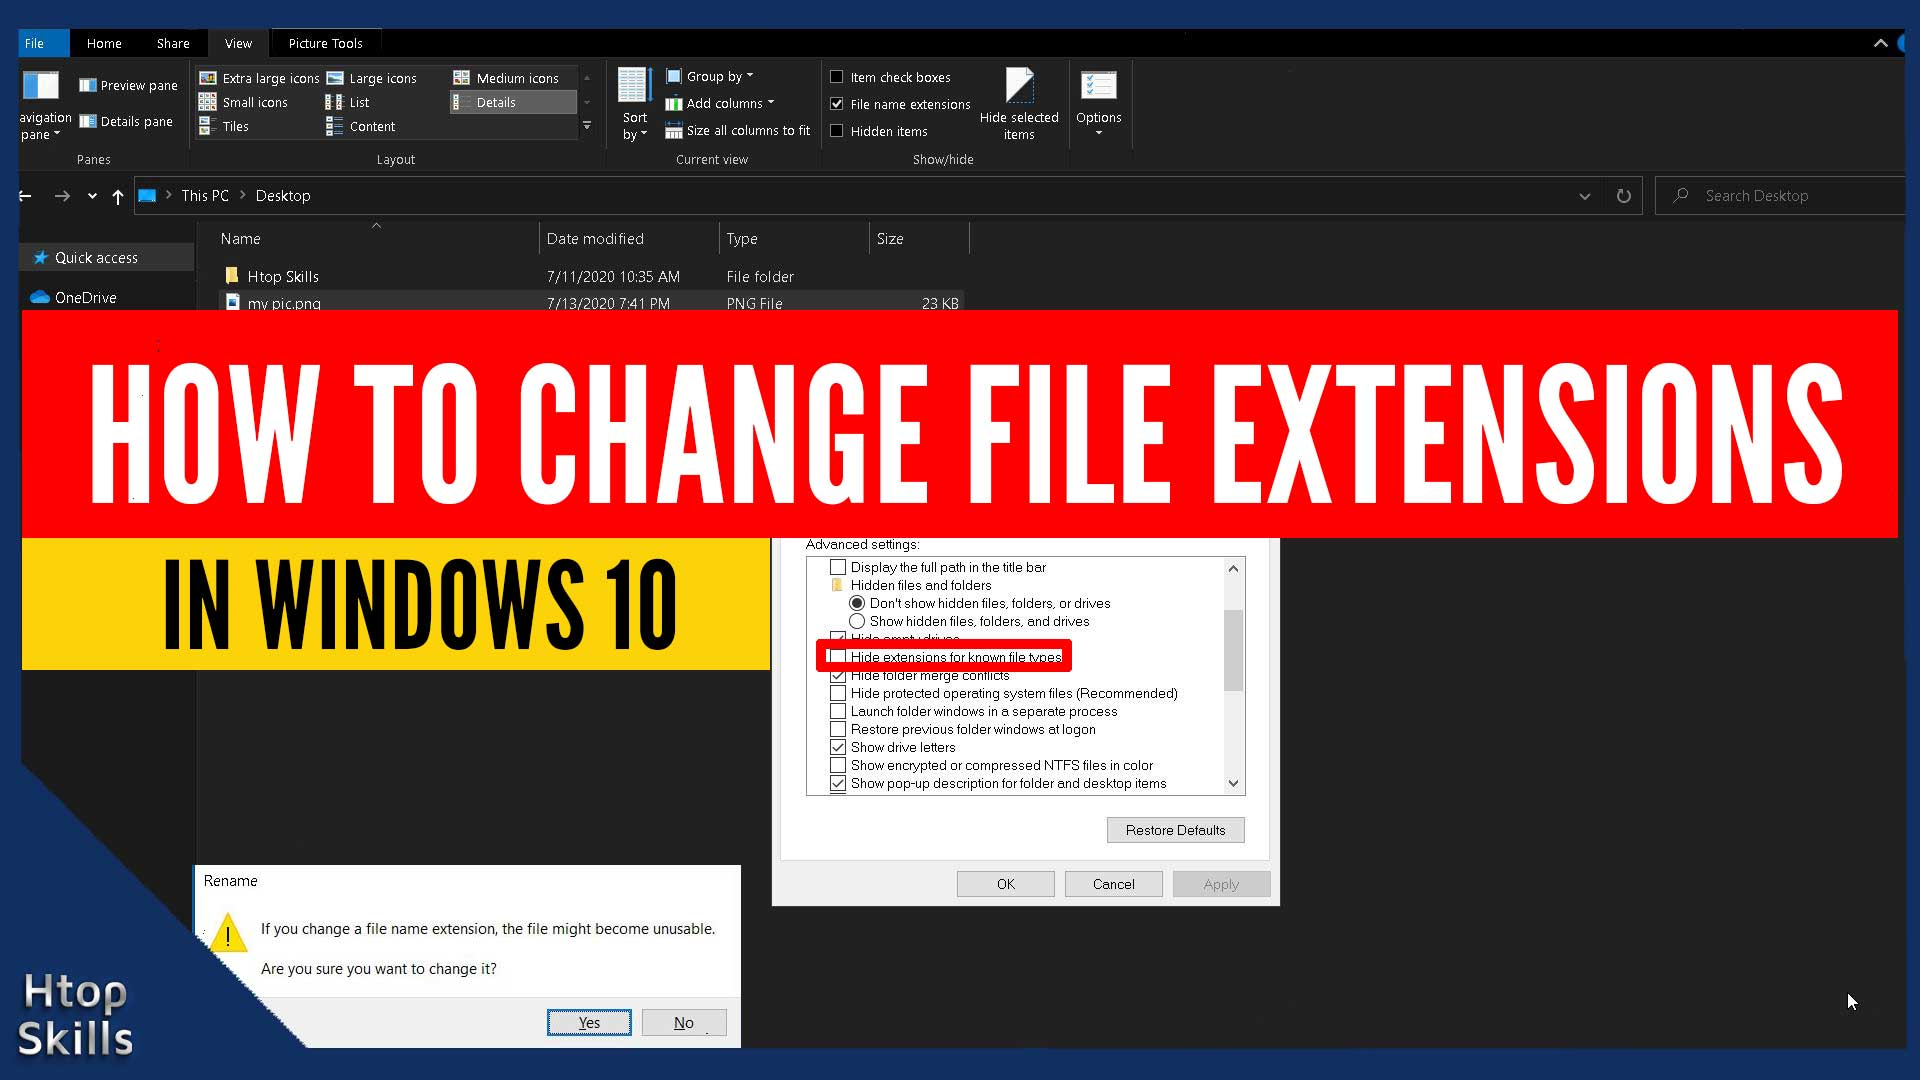 How to Change File Extensions in Windows 10